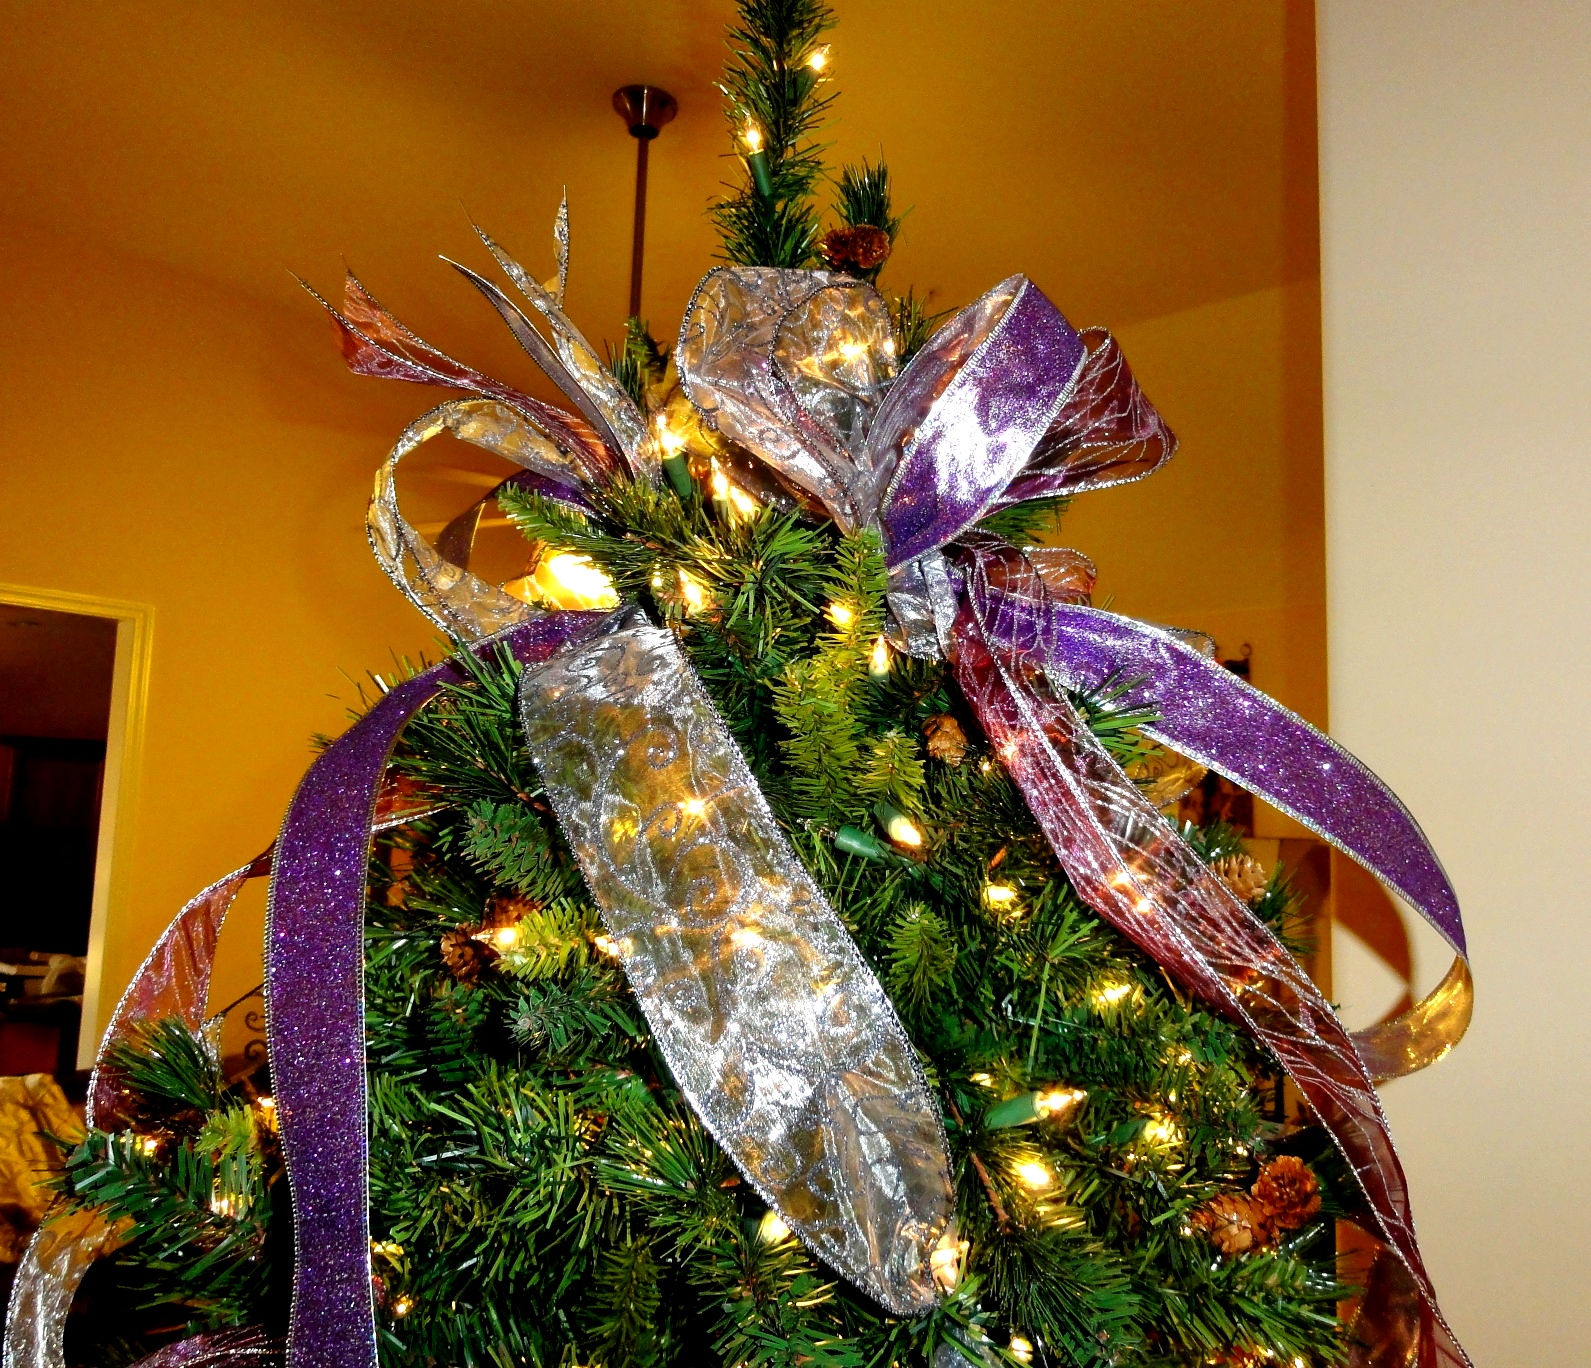 Decorating Christmas Trees With Ribbon: Cheri Quite Contrary: How To Use Ribbon To Decorate Your